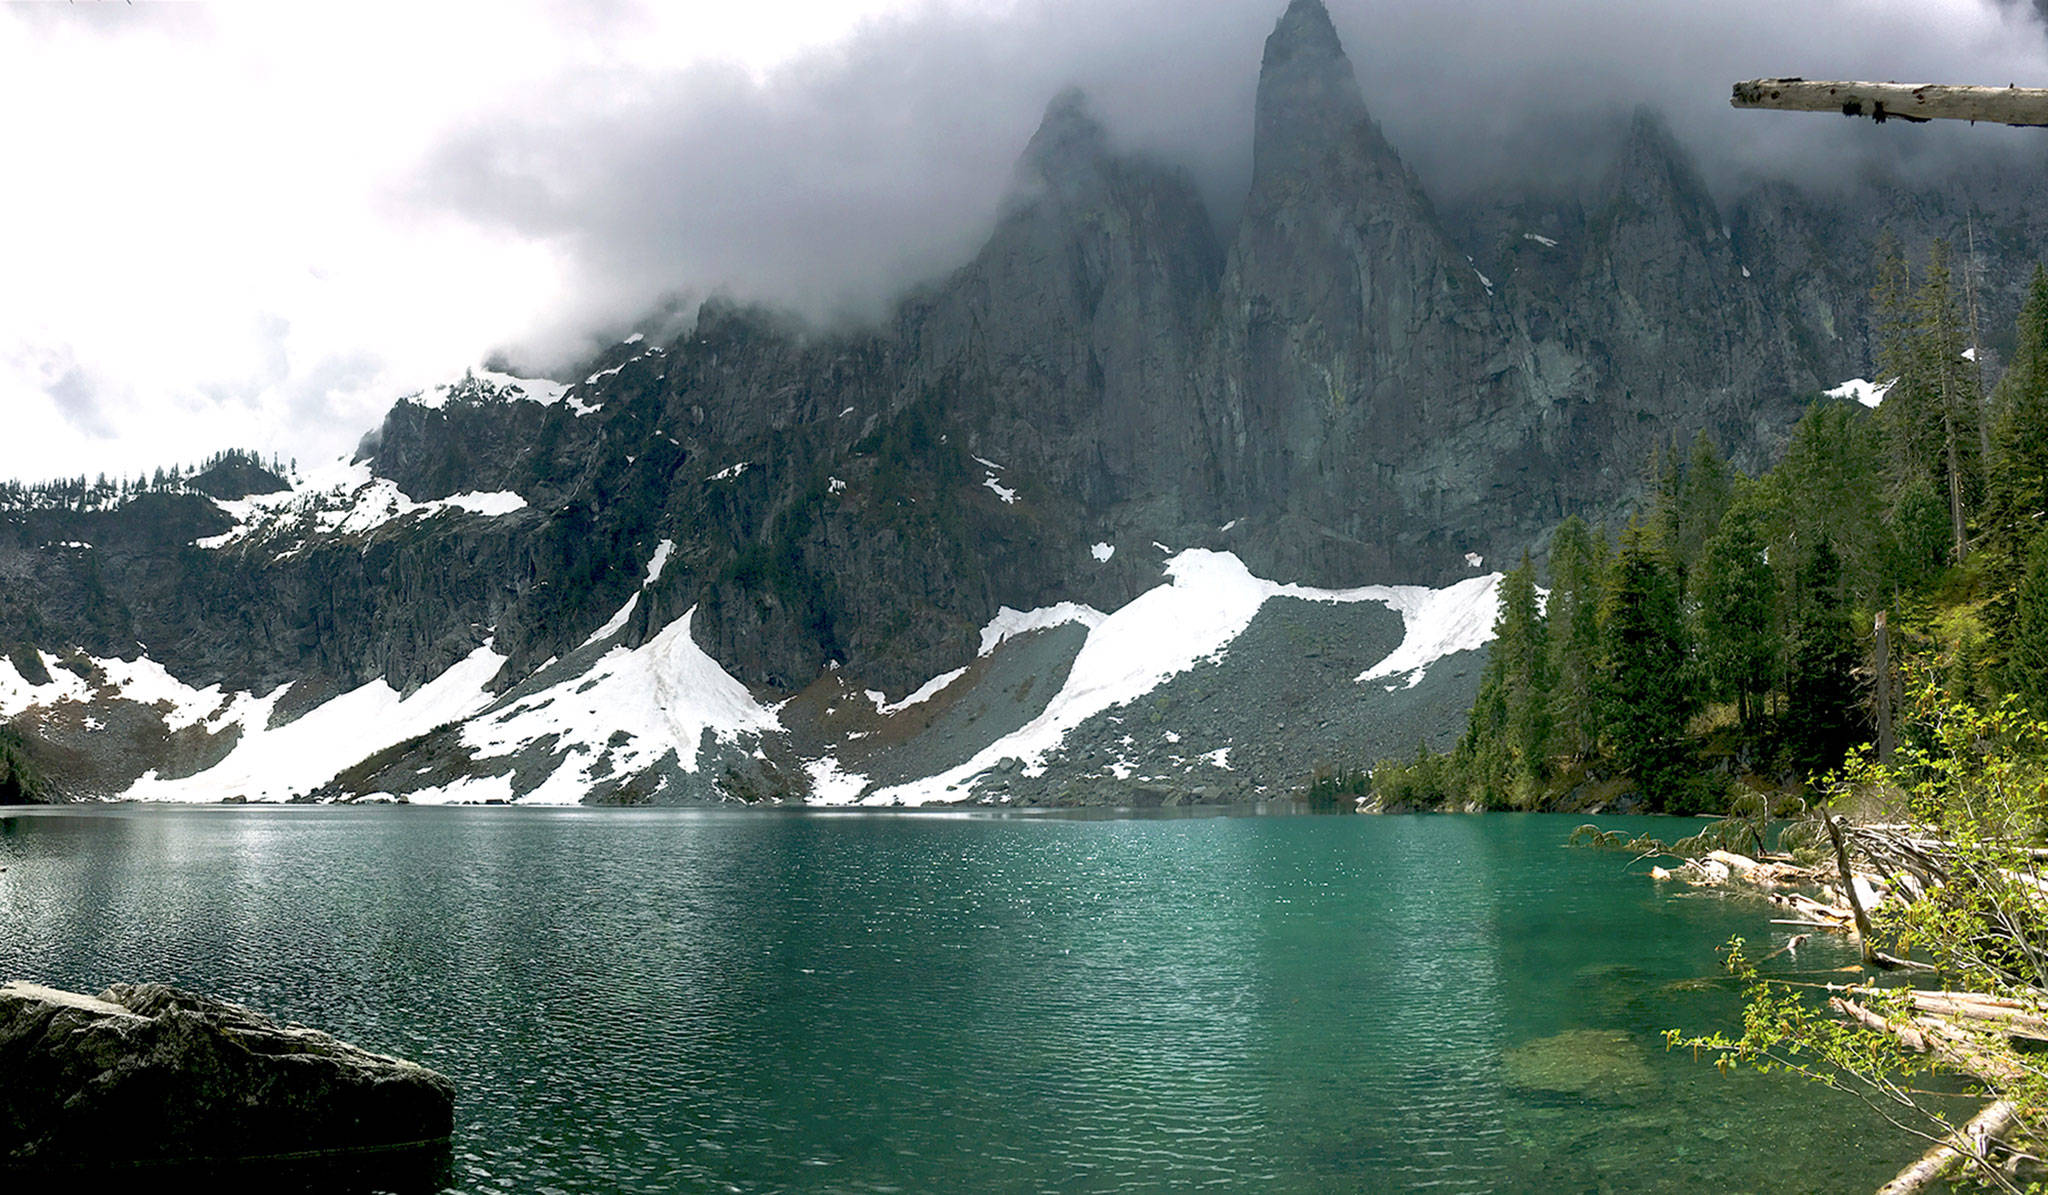 """Lake Serene, in the Mount Baker-Snoqualmie National Forest, offers a short hike to a waterfall and a longer hike to an alpine lake. The """"Economic, Environmental, Social Benefits of Recreational Trails in Washington State"""" study looked at these trails. (U.S. Forest Service)"""